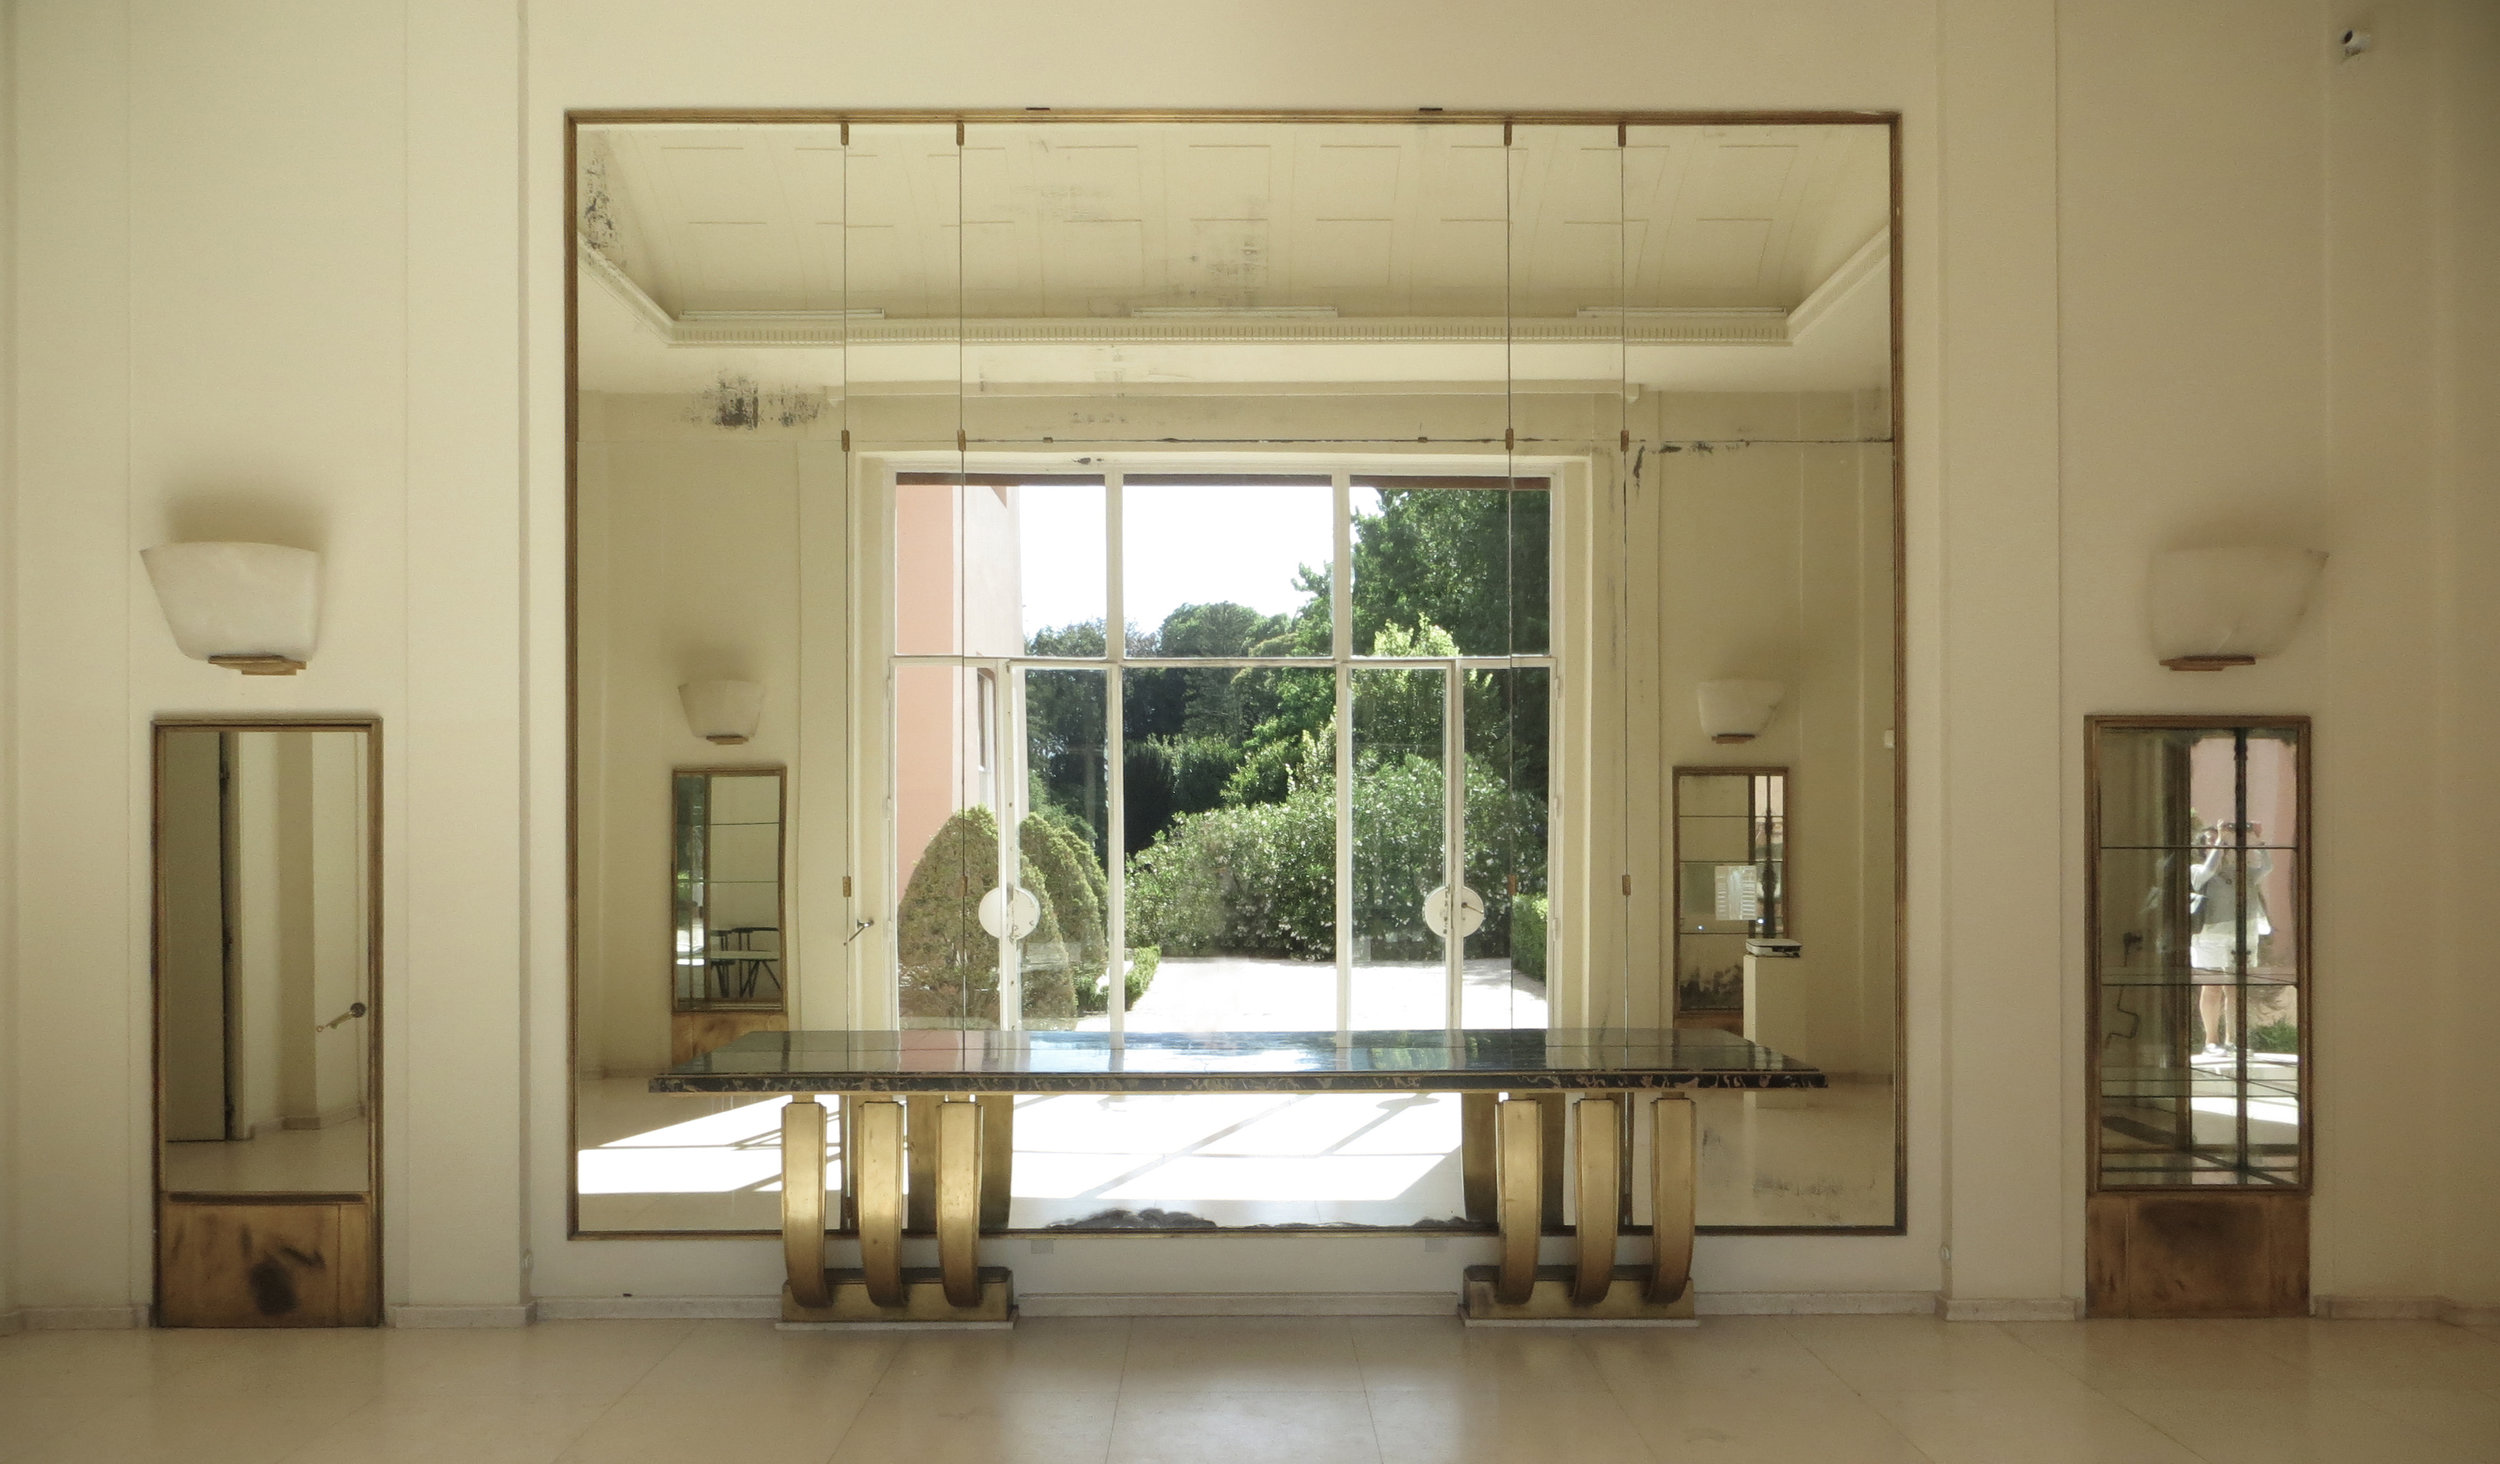 The fascination for the design and detail present in the interiors of Casa de Serralves, served as inspiration for    Diana Vieira da Silva,    creative director of Monseo.